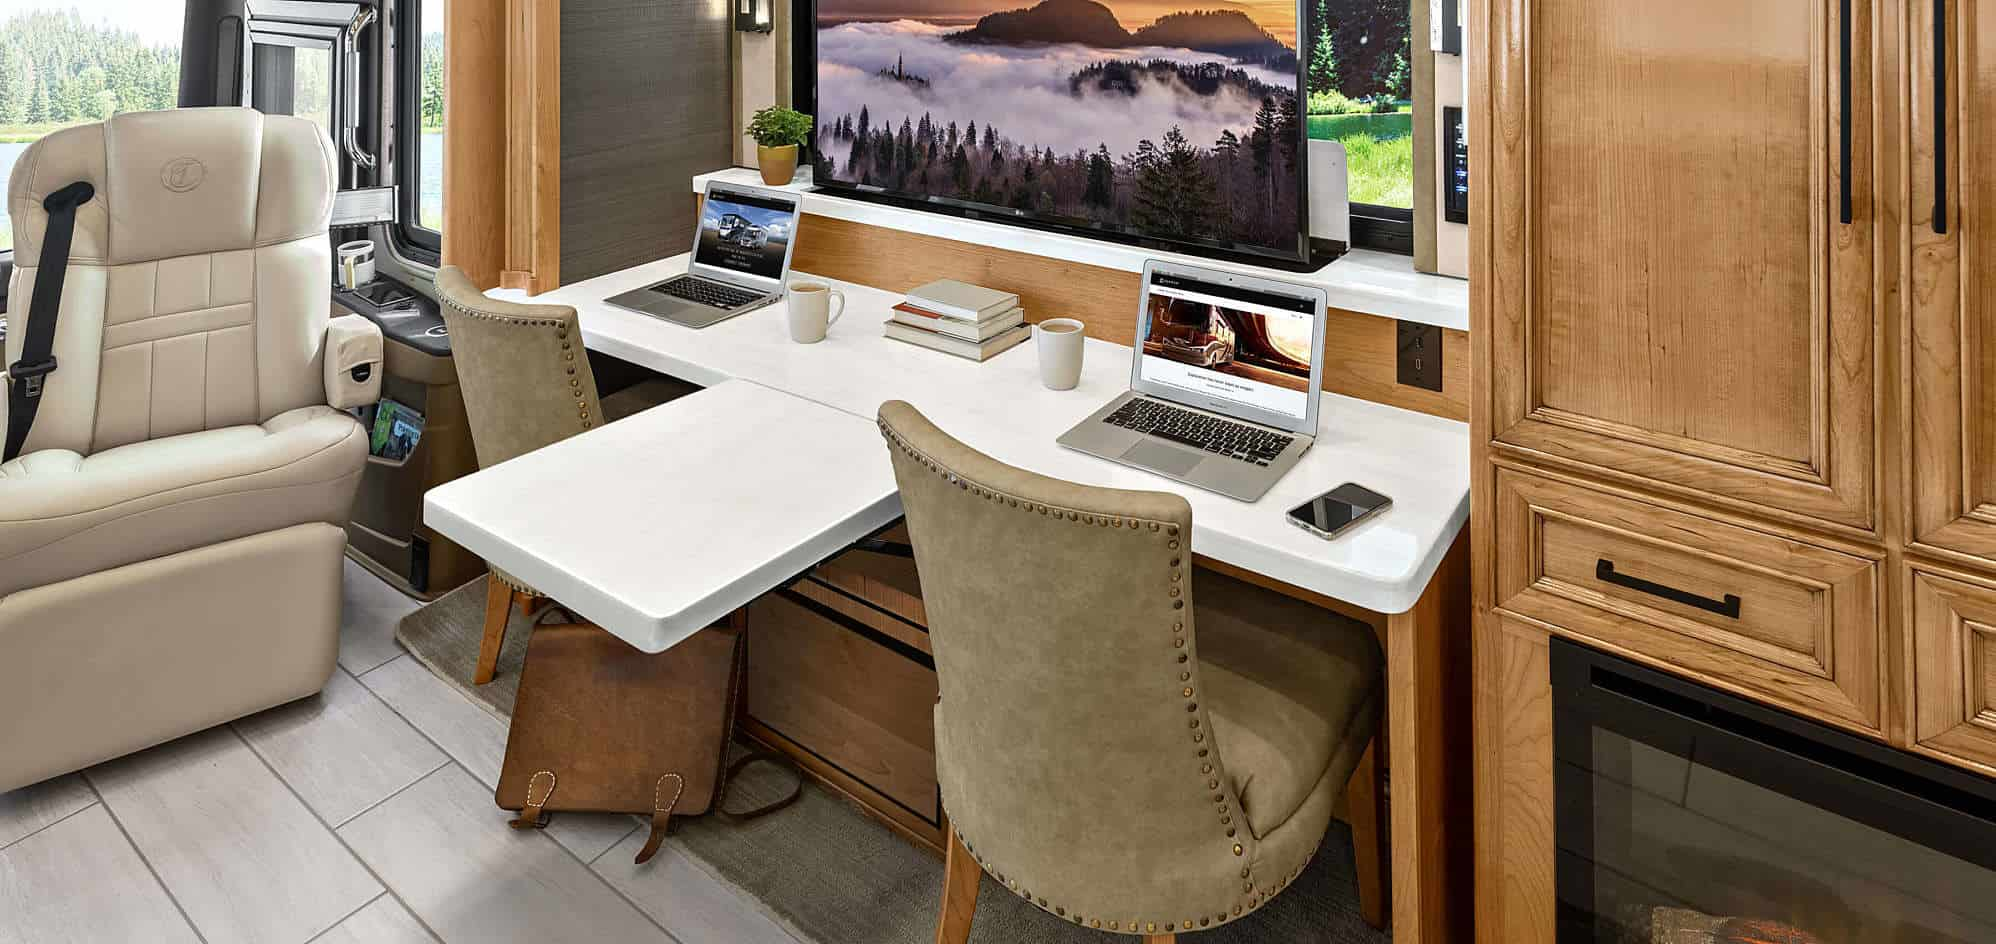 Today's RVers expect multiple flat screen TVs and space for a mobile office - Photo: Tiffin Motorhomes